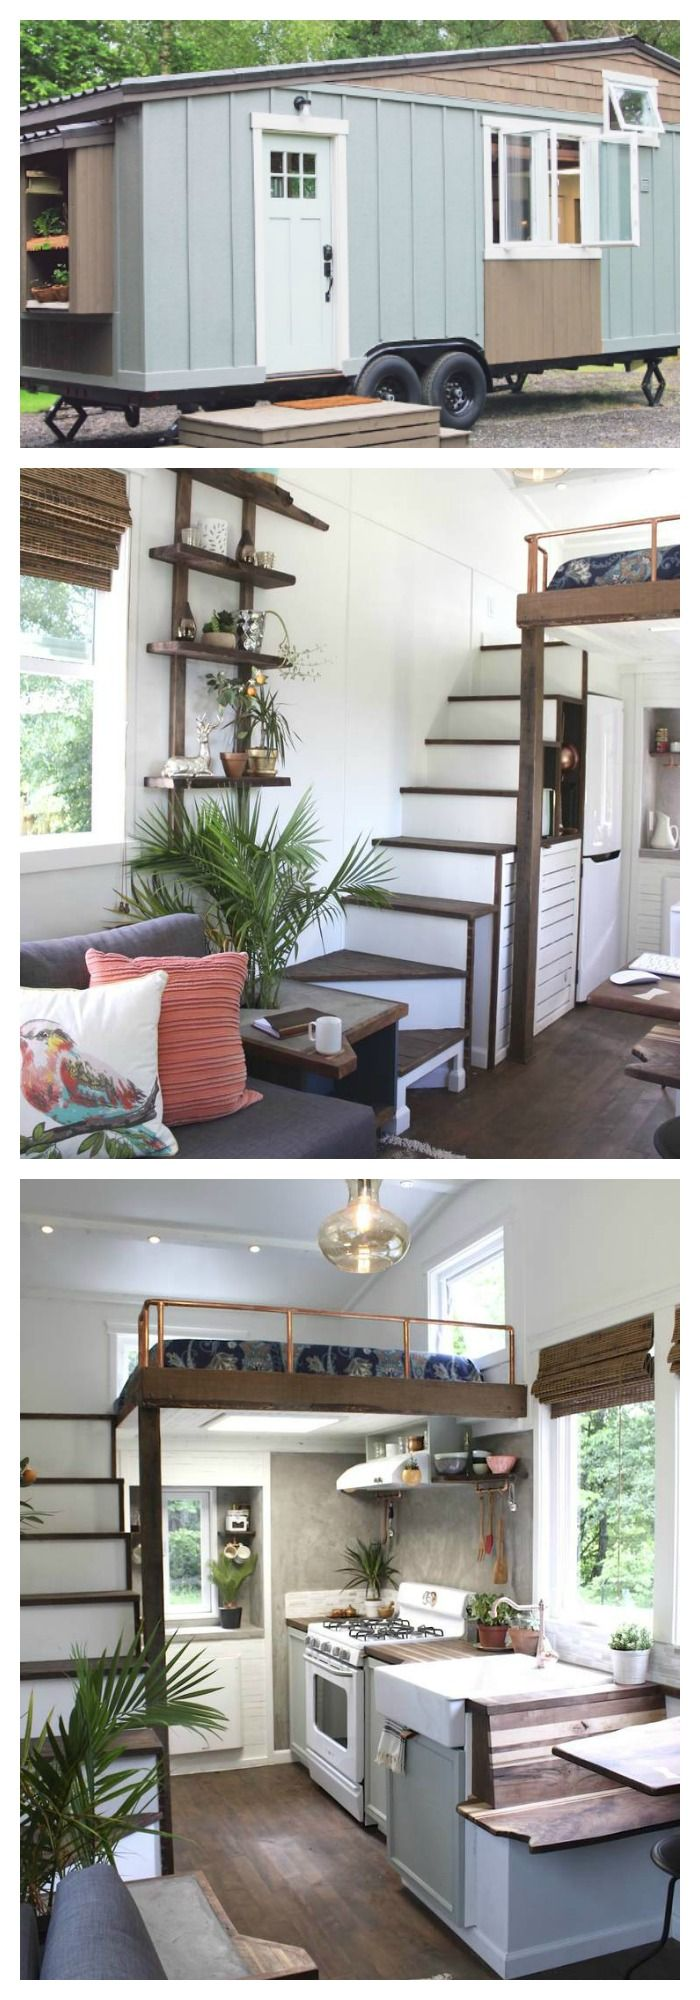 Pleasant 17 Best Ideas About Tiny House Design On Pinterest Tiny Homes Largest Home Design Picture Inspirations Pitcheantrous